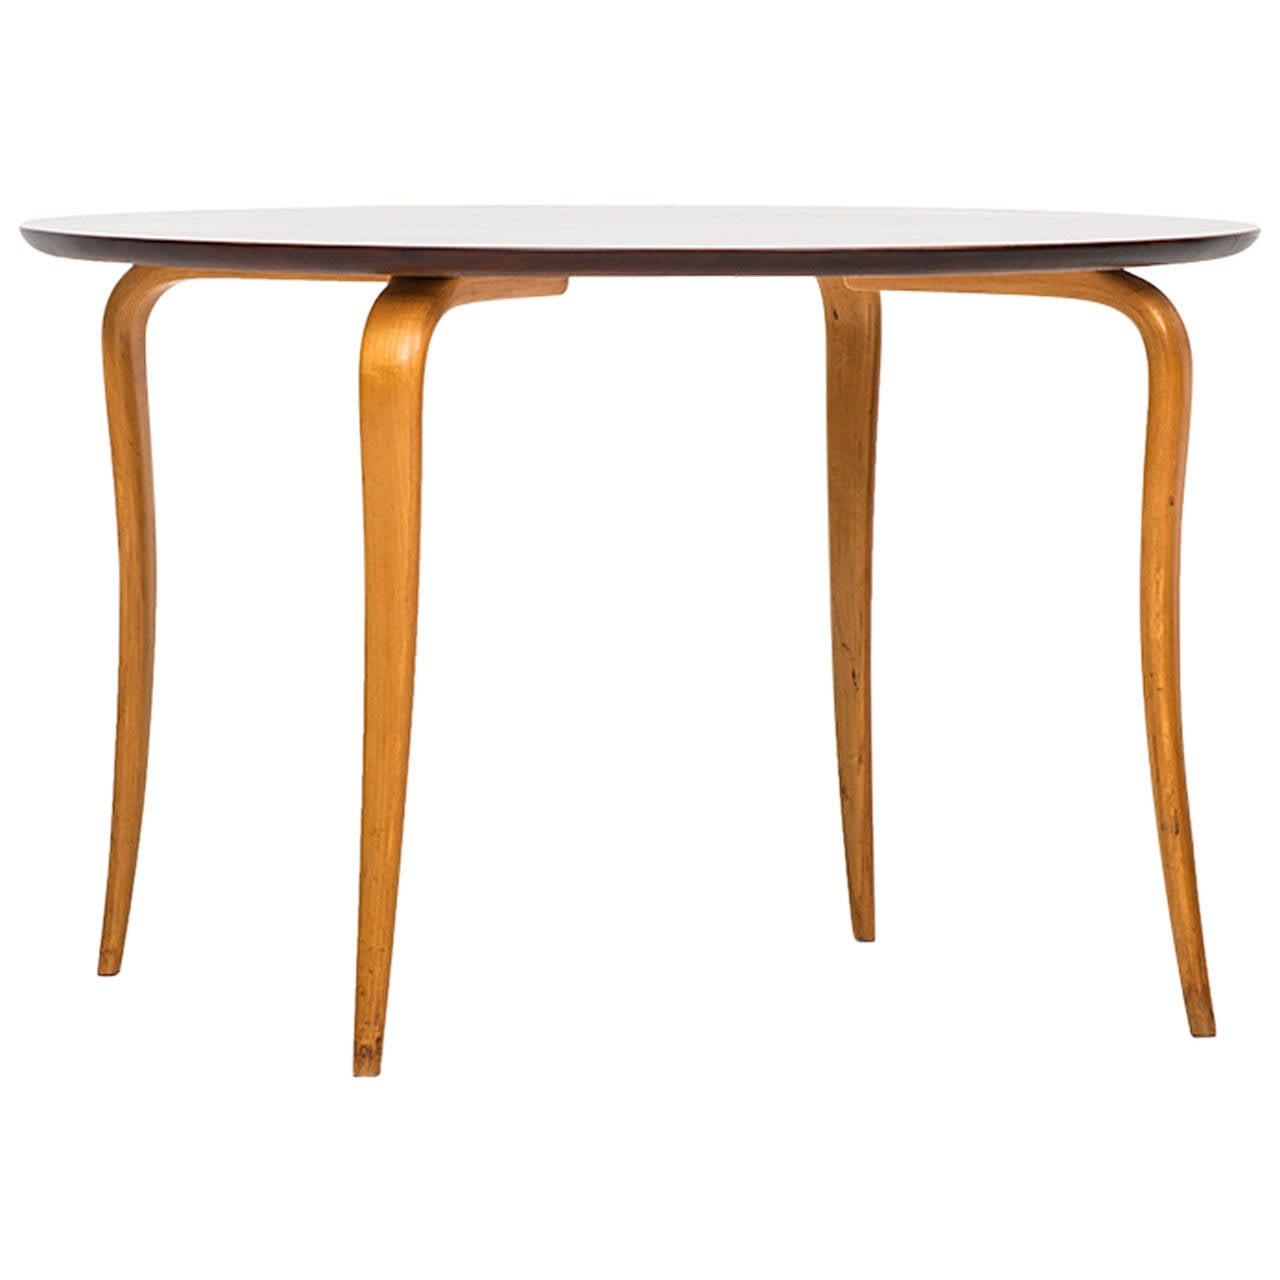 Sture B Ohlsson Coffee Table In Beech And Mahogany For Sale At 1stdibs